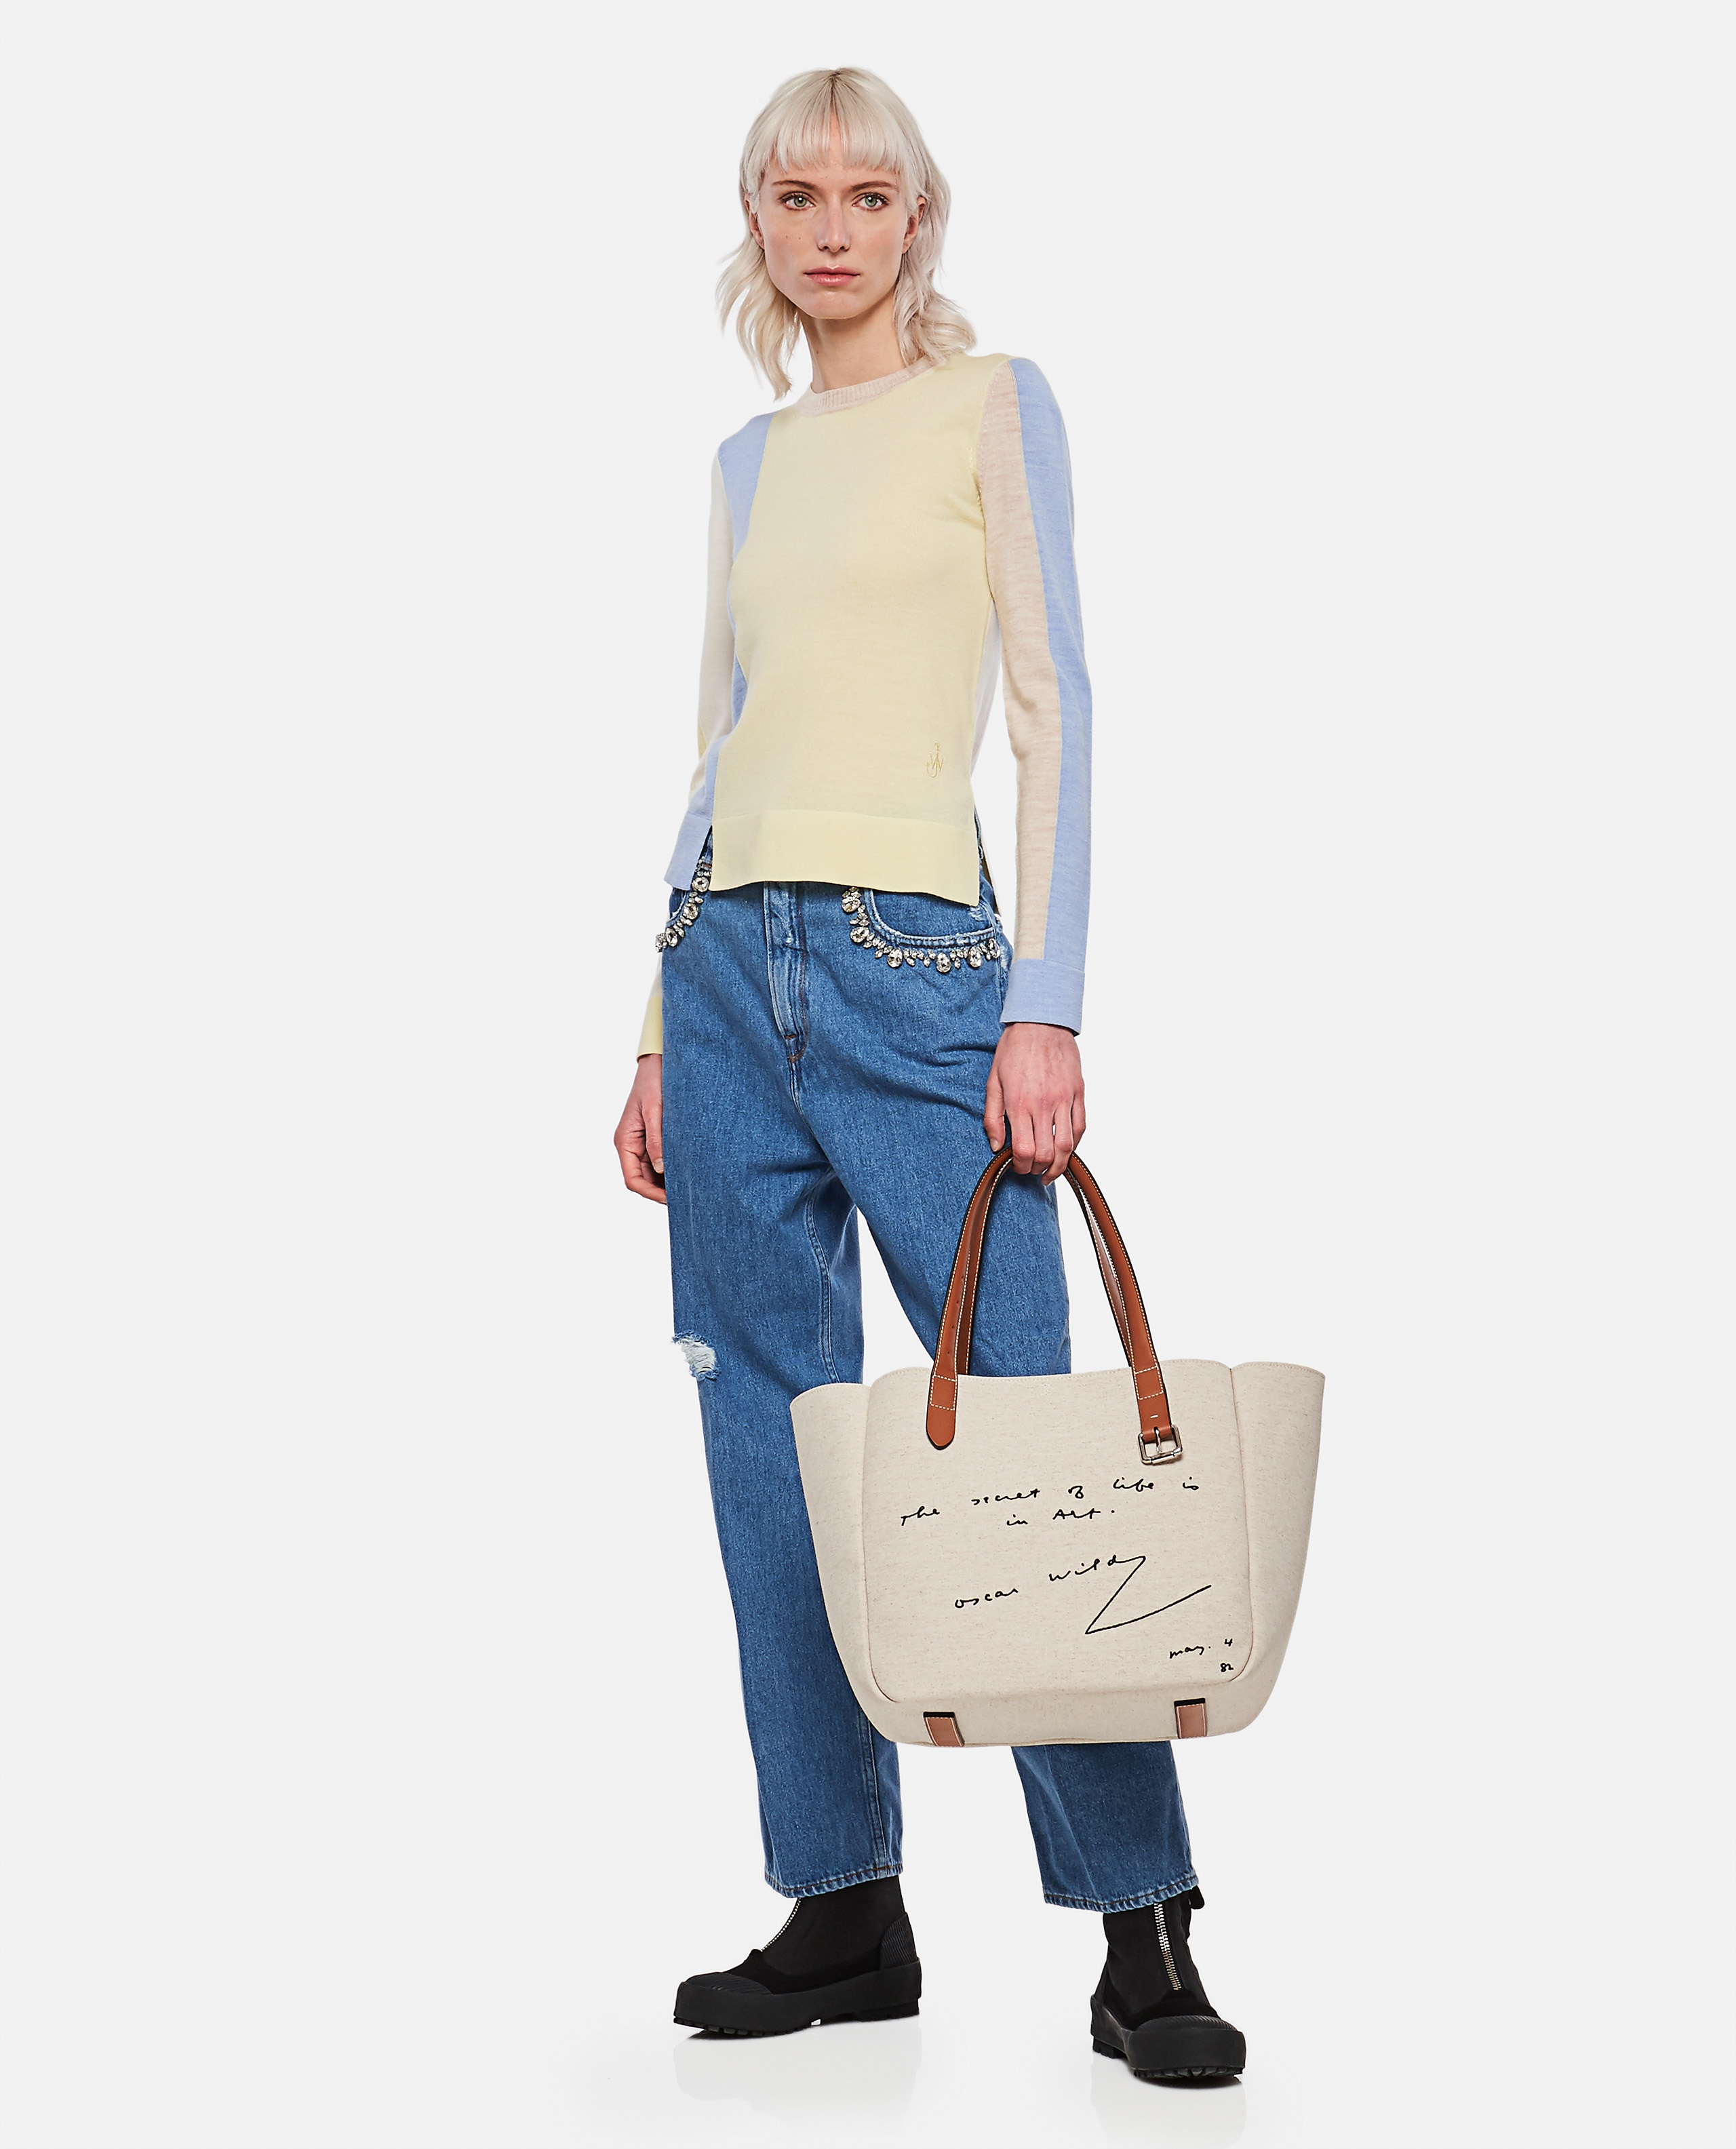 Kim jeans in denim with applied crystals Women Golden Goose 000286420042265 2